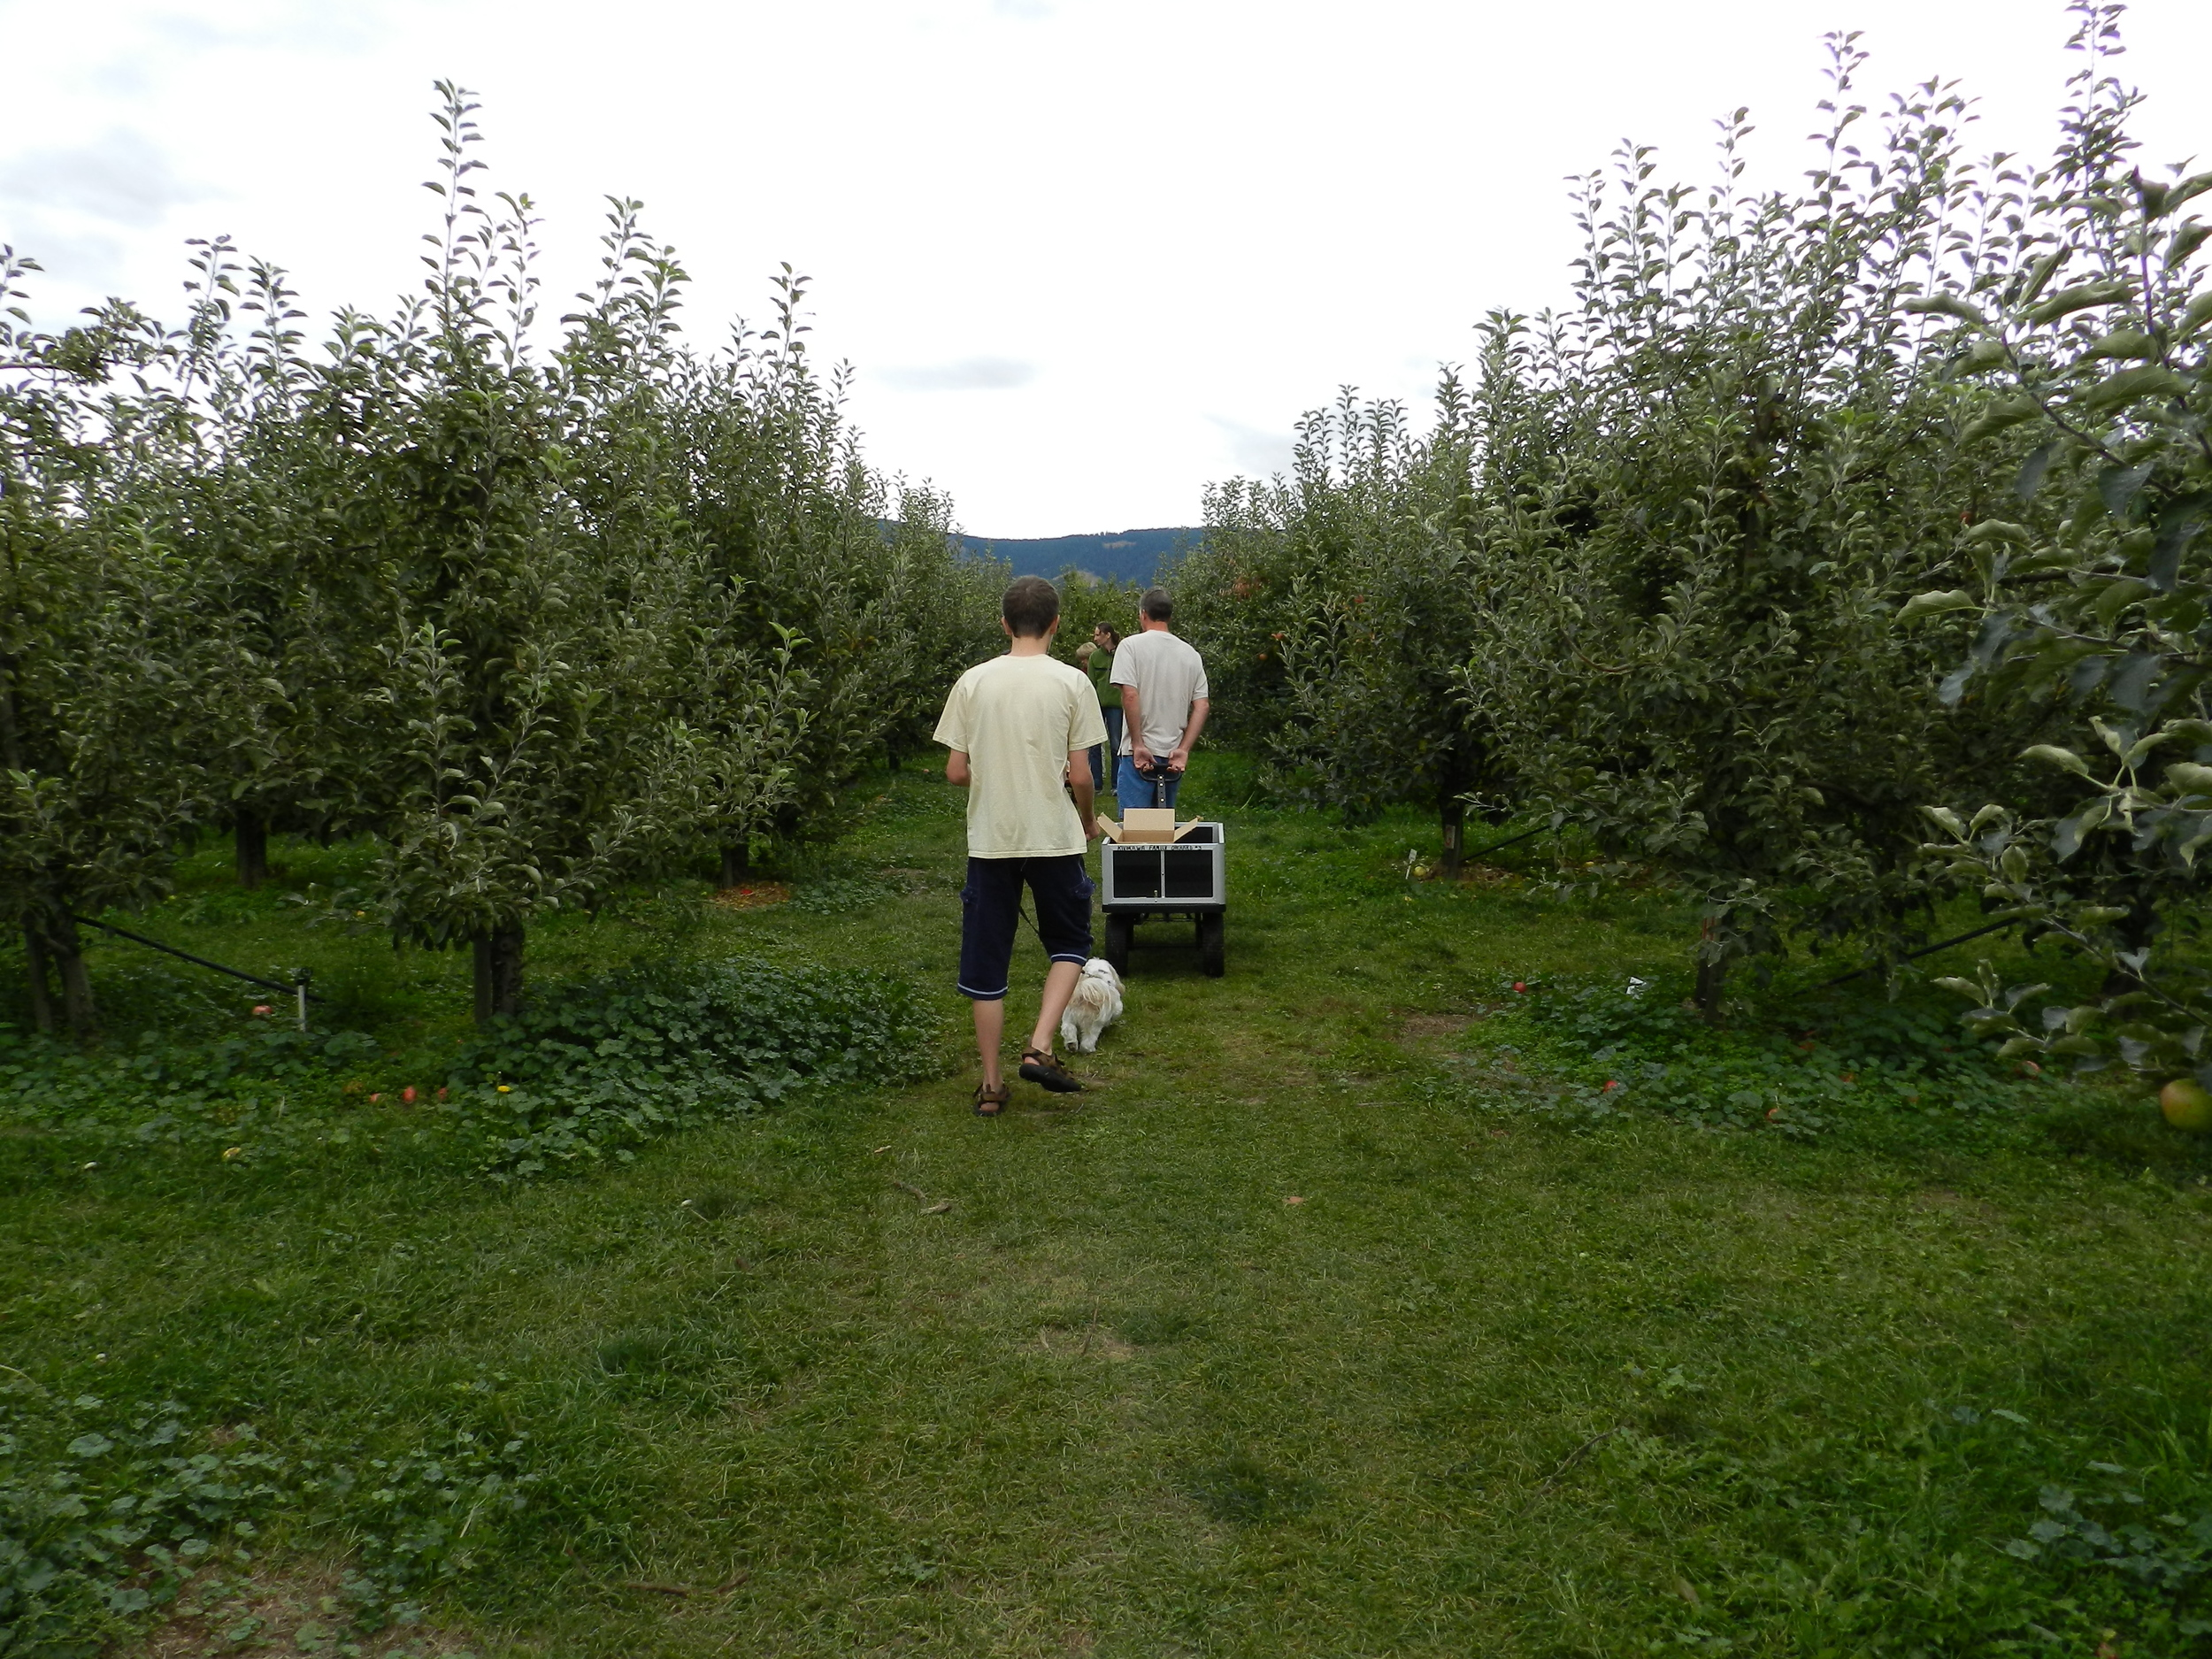 Apple picking at Kiyokawa Orchards (3)